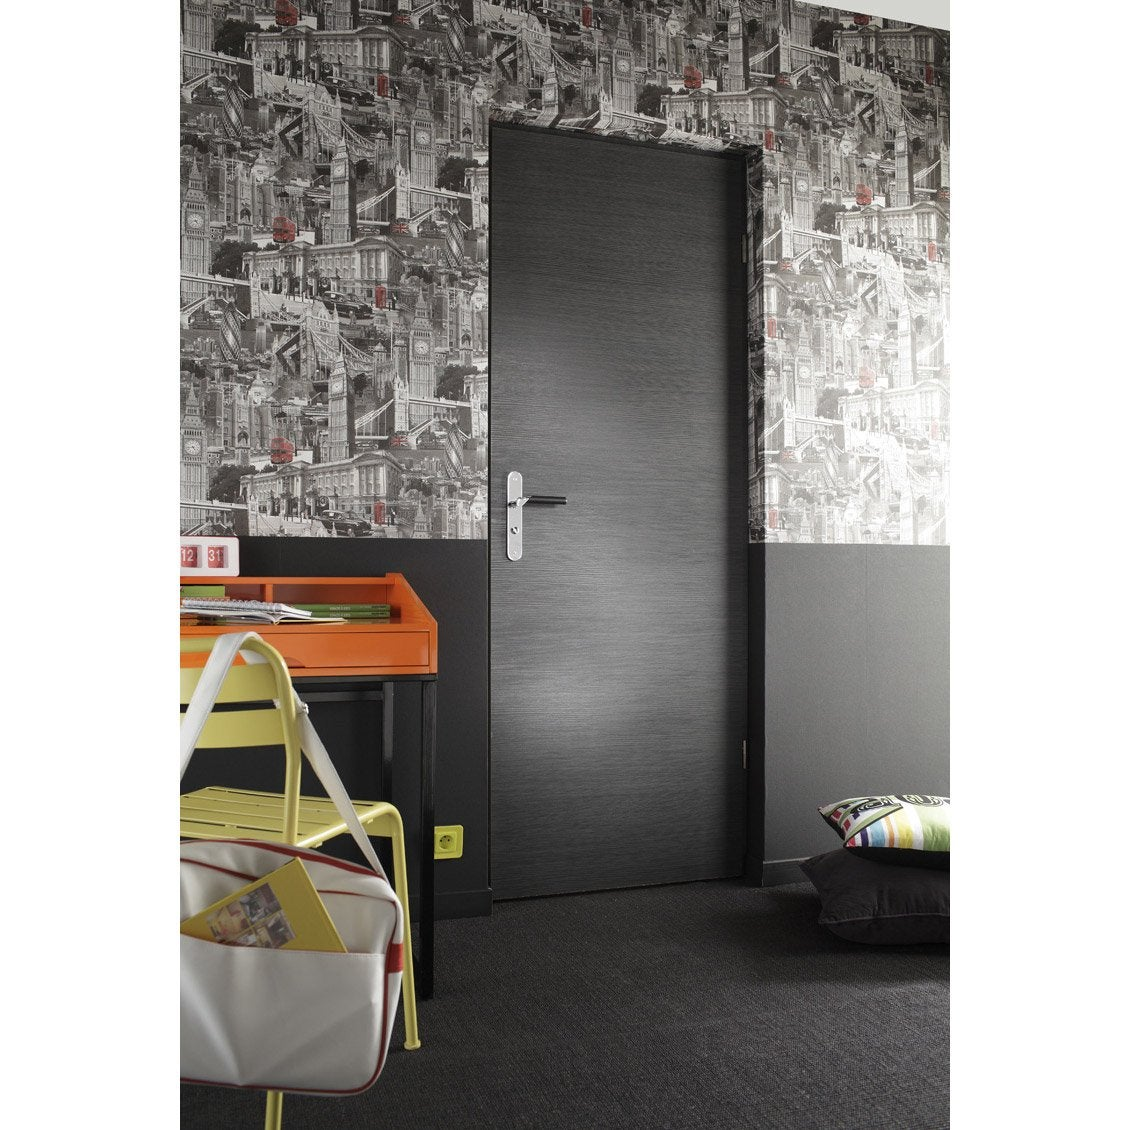 porte sans b ti mdf rev tu d cor ch ne gris londres 204x73cm poussant gauche leroy merlin. Black Bedroom Furniture Sets. Home Design Ideas